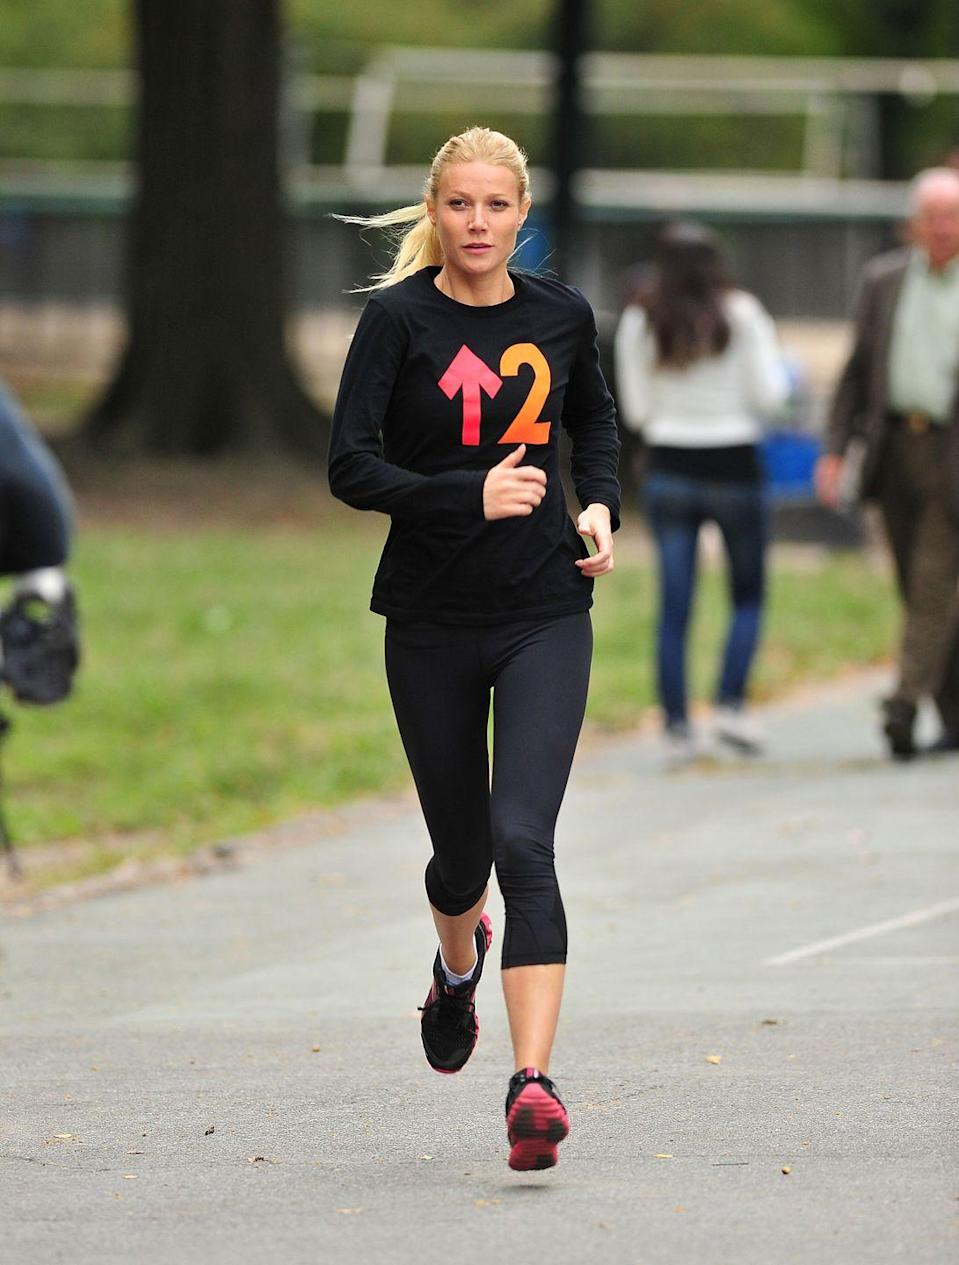 """<p>Paltrow credits her long-time trainer Tracy Anderson—plus a (mostly) clean diet low in grains and sugar, according to <a href=""""https://www.shape.com/celebrities/interviews/gwyneth-paltrow-diet-cleanse"""" rel=""""nofollow noopener"""" target=""""_blank"""" data-ylk=""""slk:Shape"""" class=""""link rapid-noclick-resp""""><em>Shape</em></a>—for her top-notch physique. The 48-year-old is also a fan of infrared saunas, often praising their detoxifying properties. </p>"""